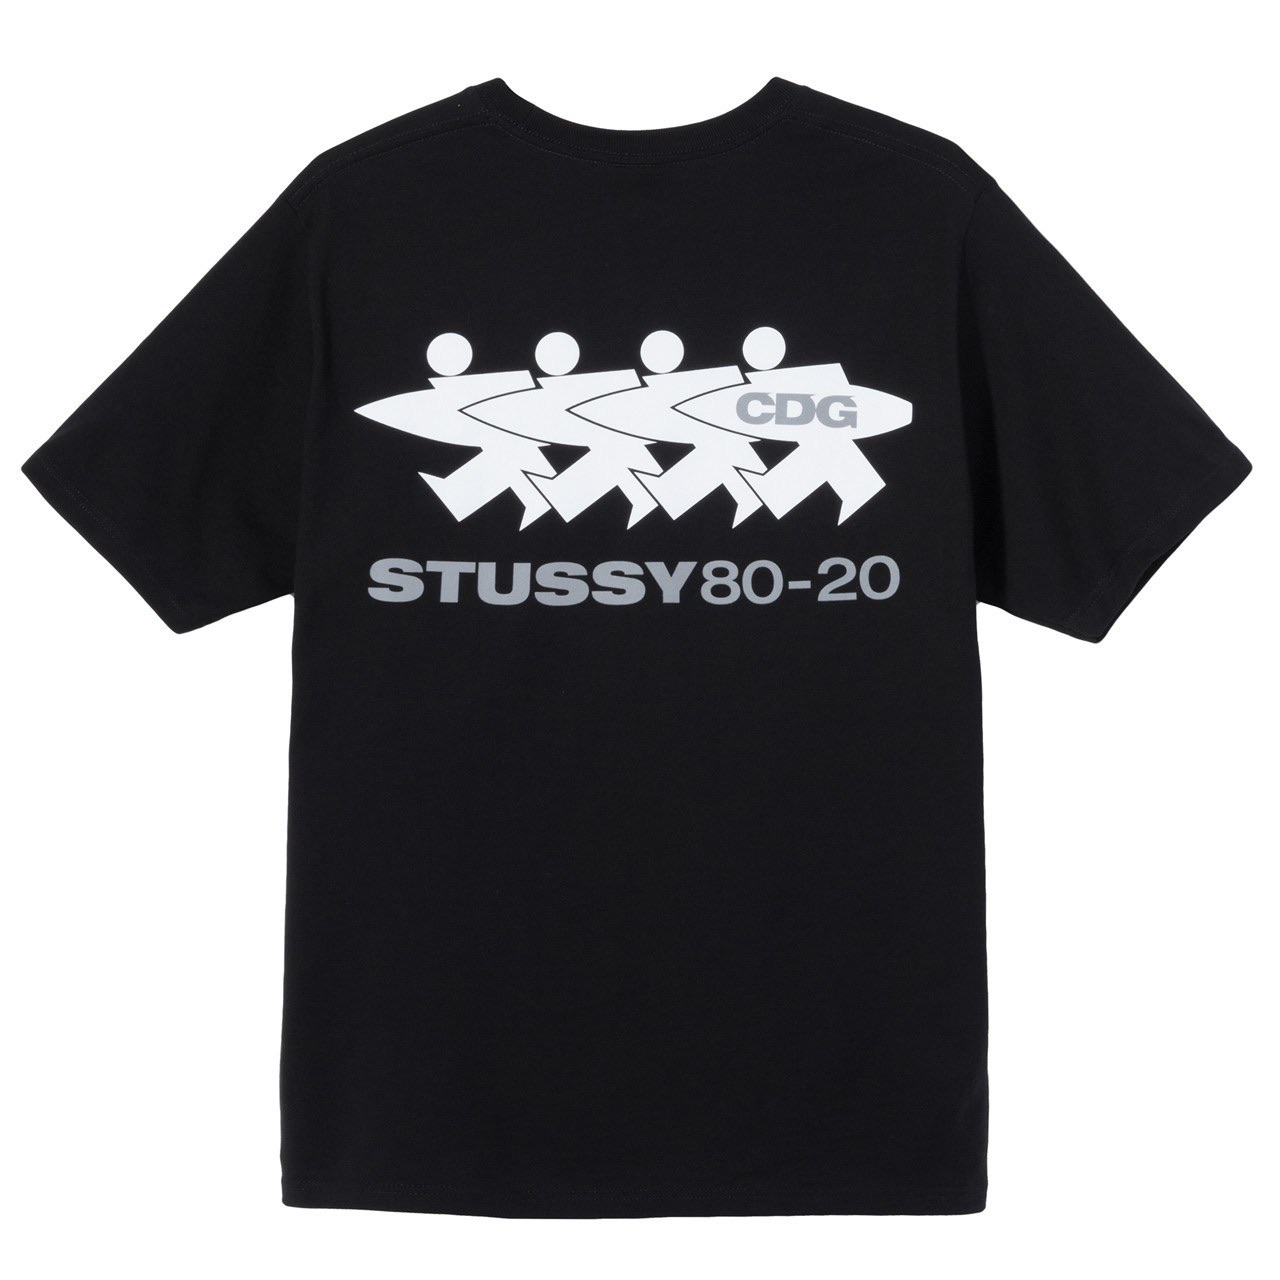 cdg-stussy-40th-anniversary-collaboration-release-20201113